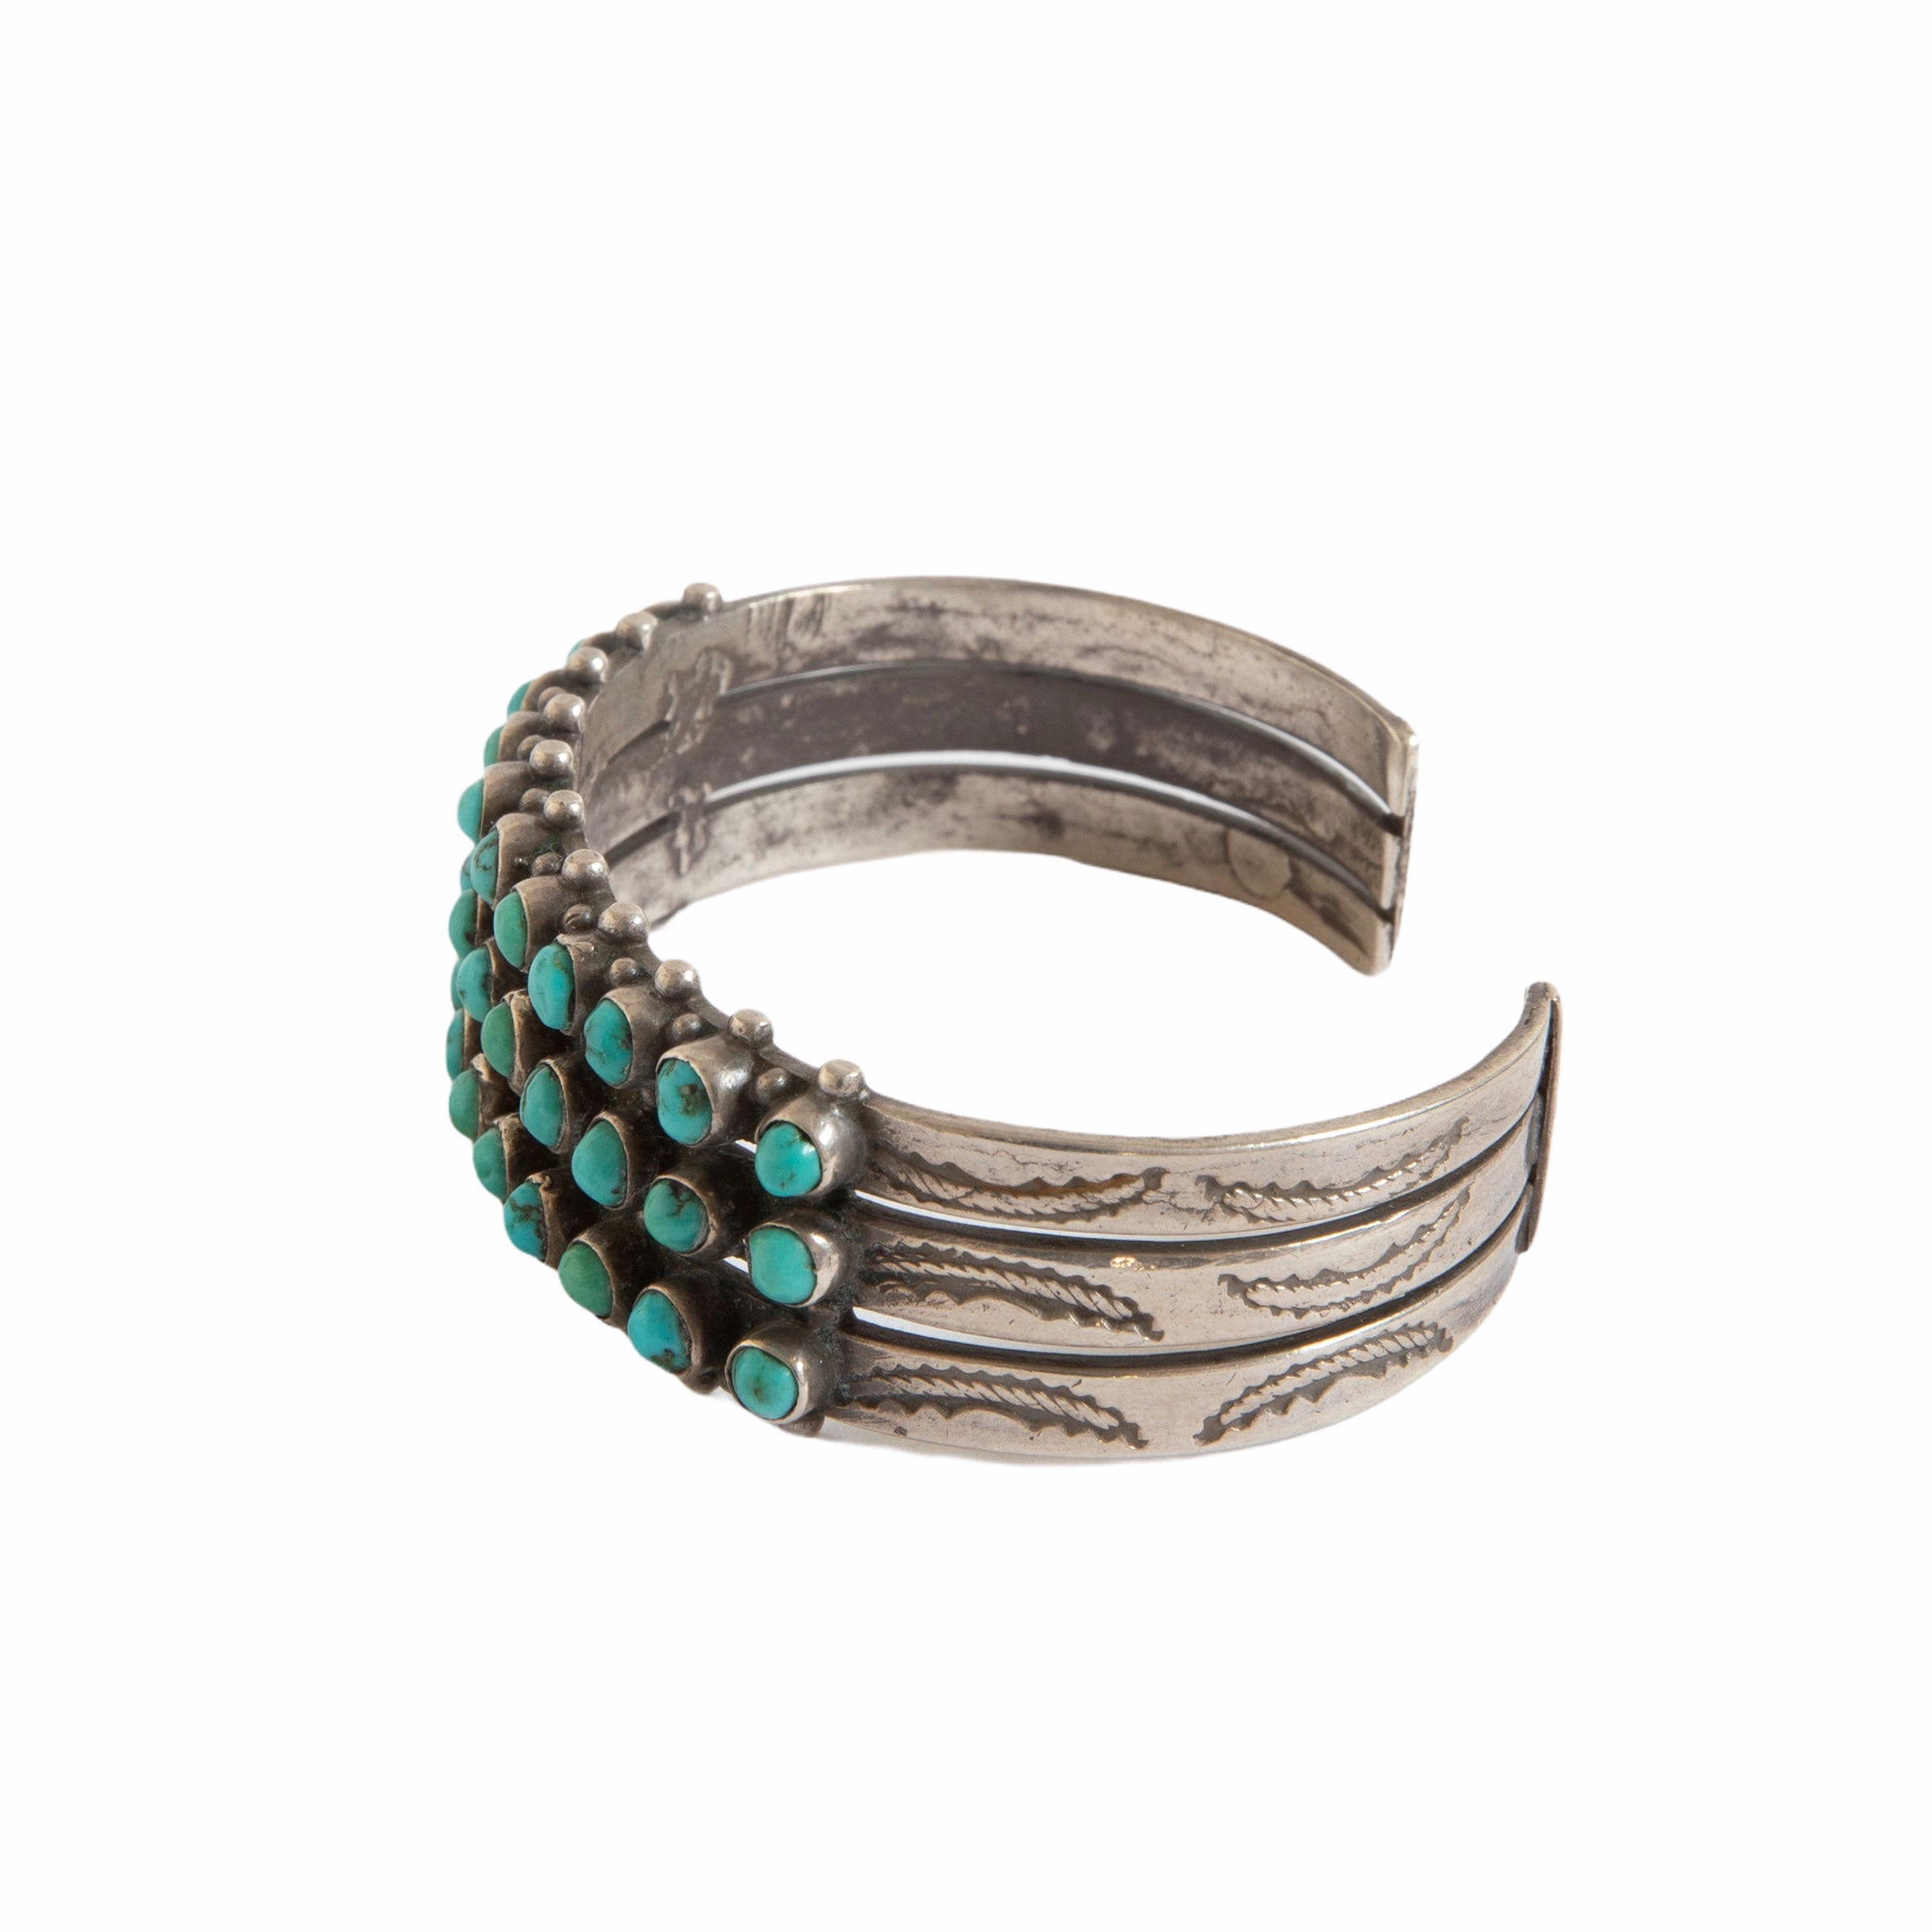 1930s Zuni Bisbee Turquoise Coin Silver Cuff